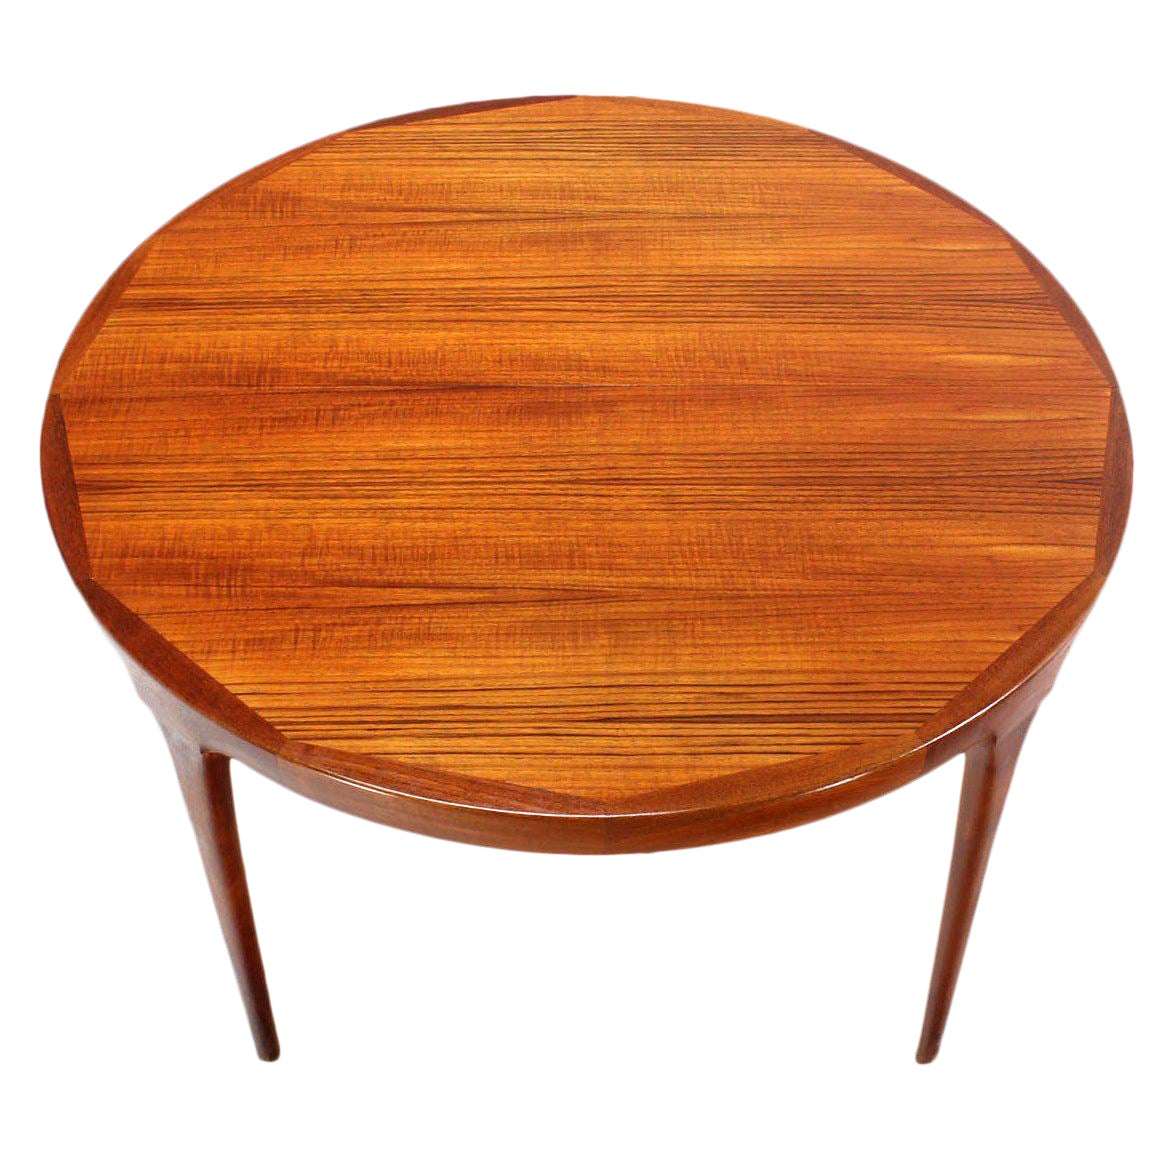 Danish Mid-Century Modern Round Teak Dining Table with Two Leaves